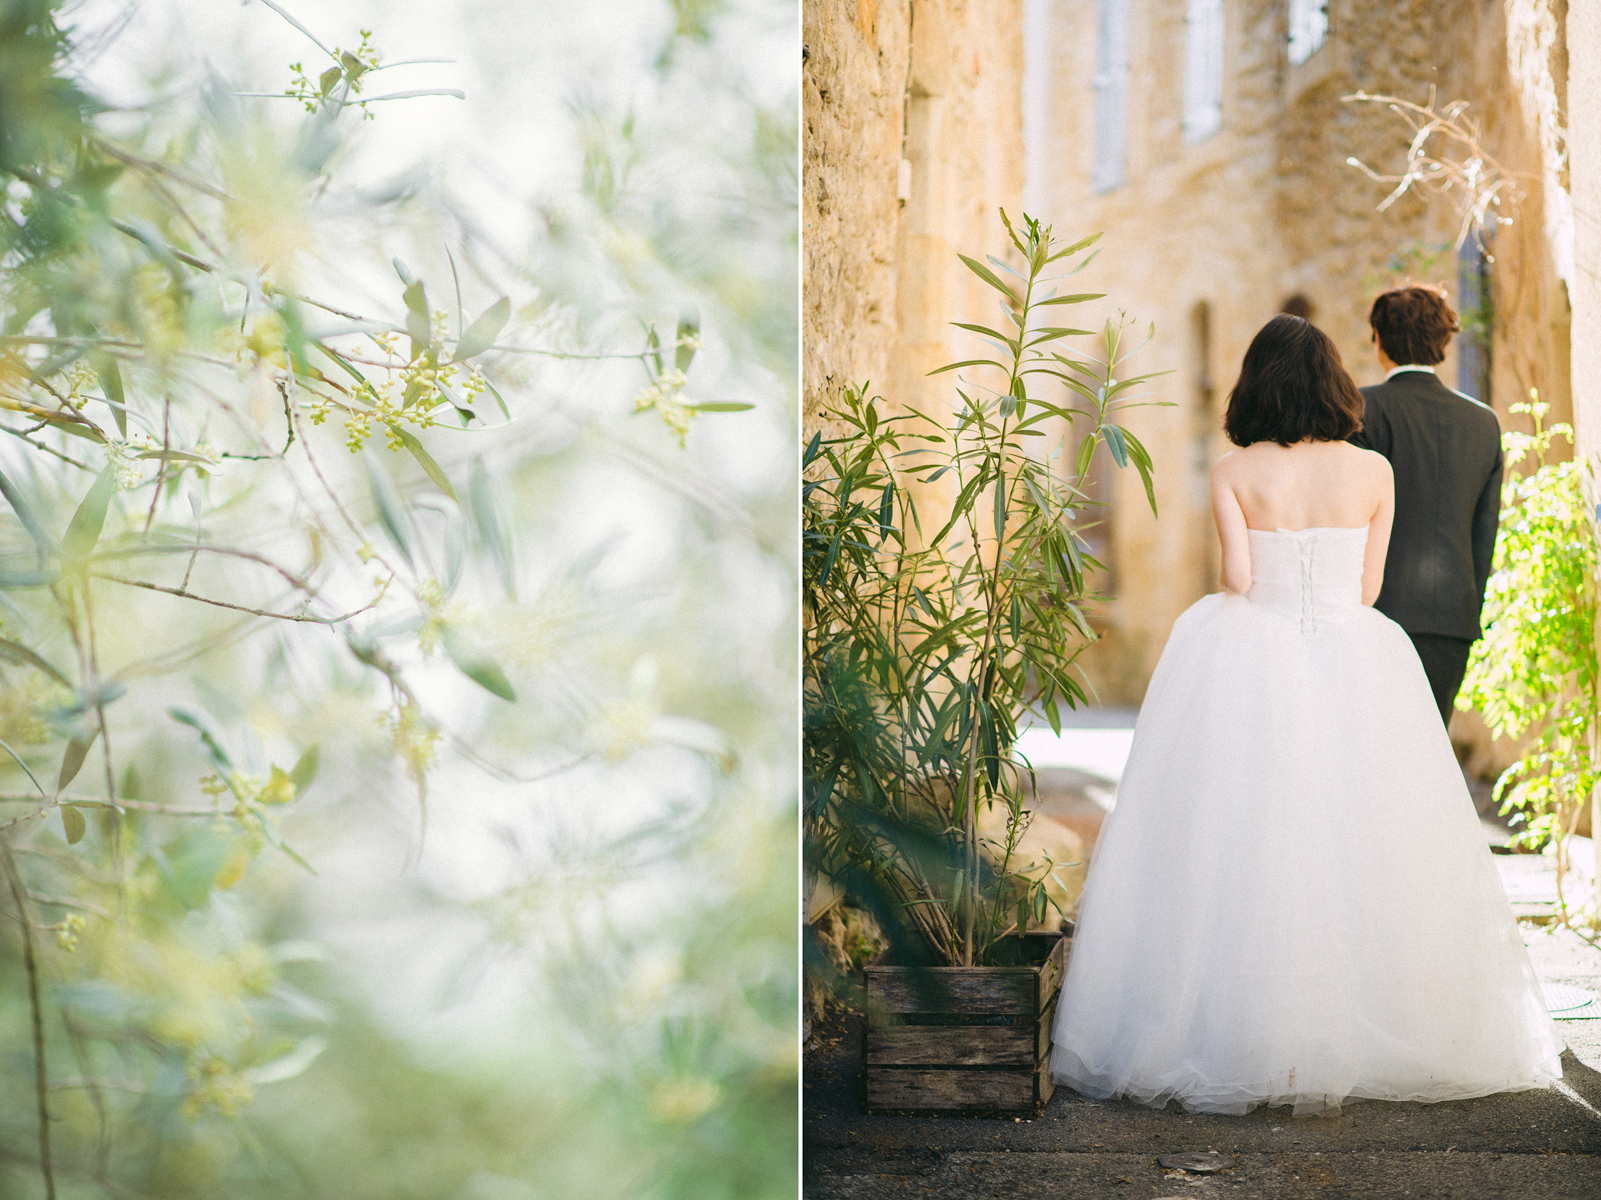 Boheme-Moon-Wedding-Photography-Taiwan-Pre-Wedding-Provence_09.jpg